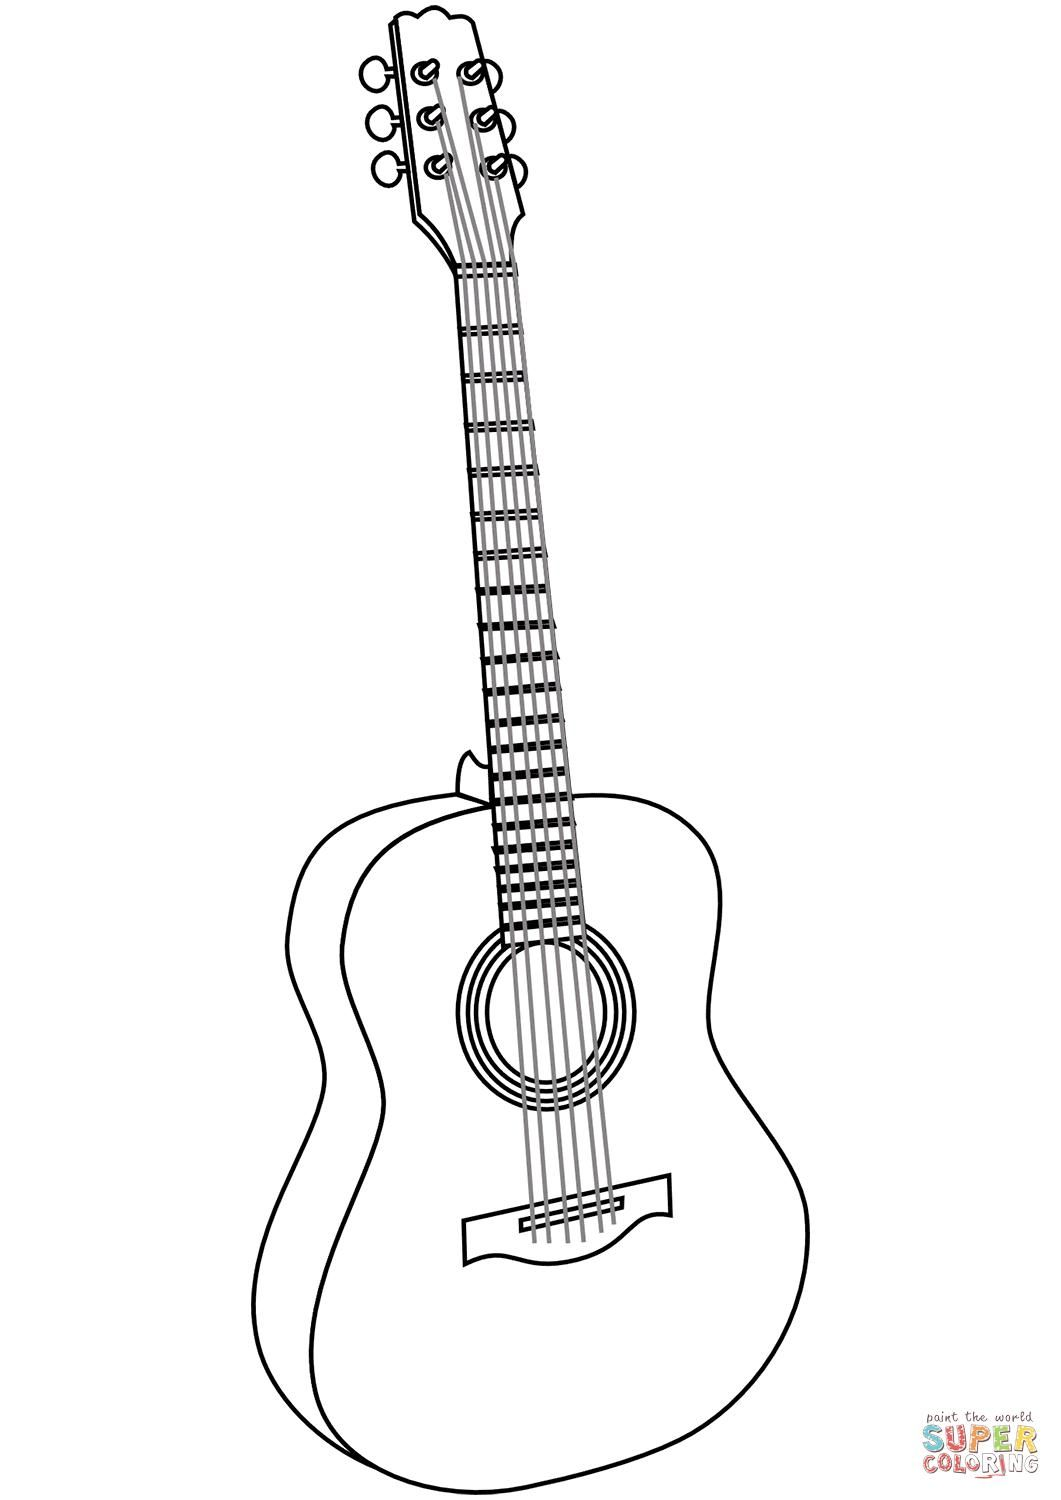 38 Coloring Page Guitar Guitar Drawing Coloring Pages Free Printable Coloring